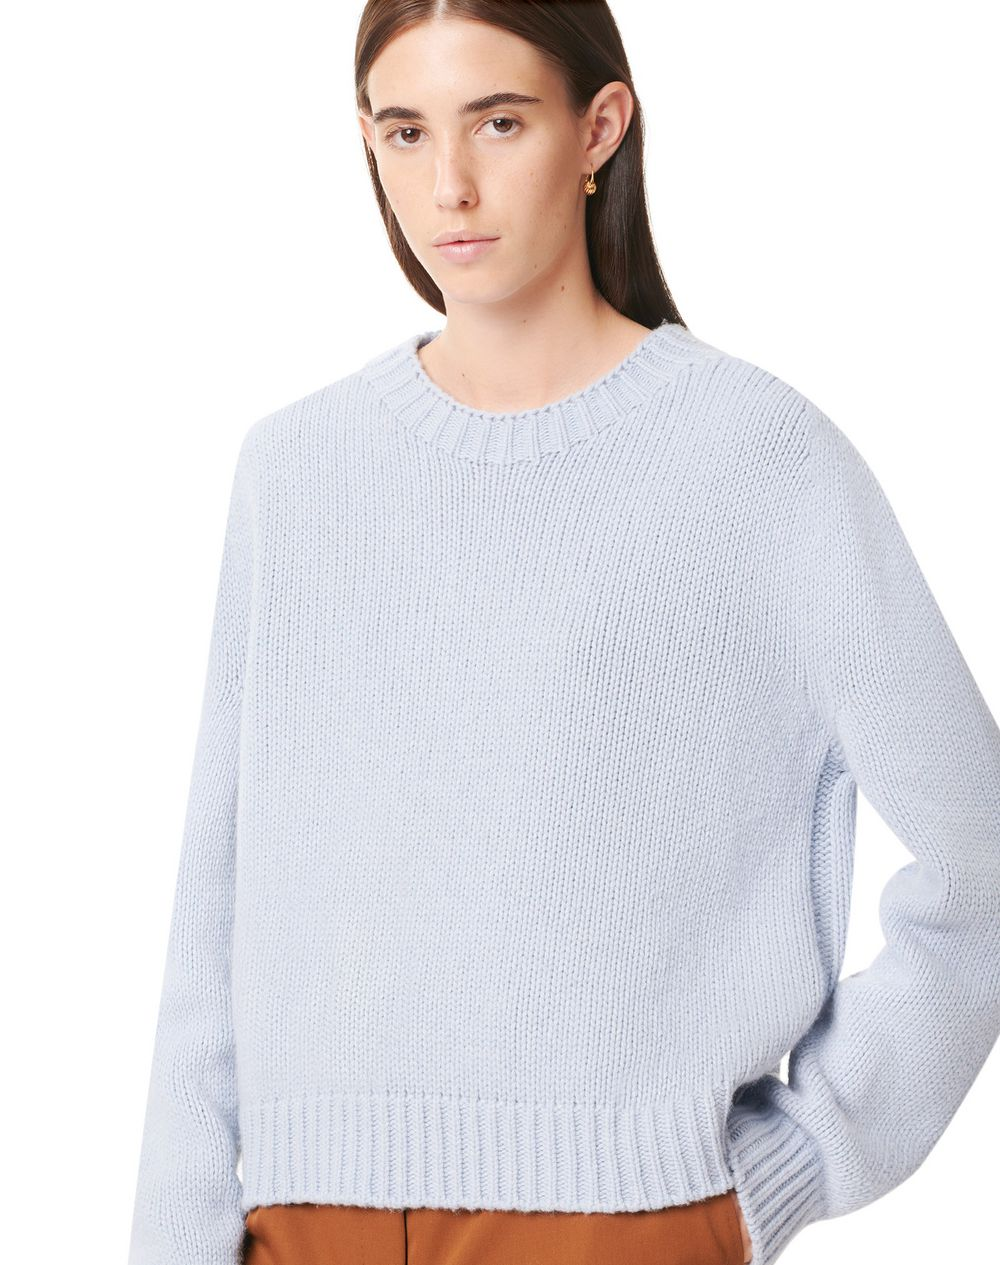 Crewneck sweater - Lanvin